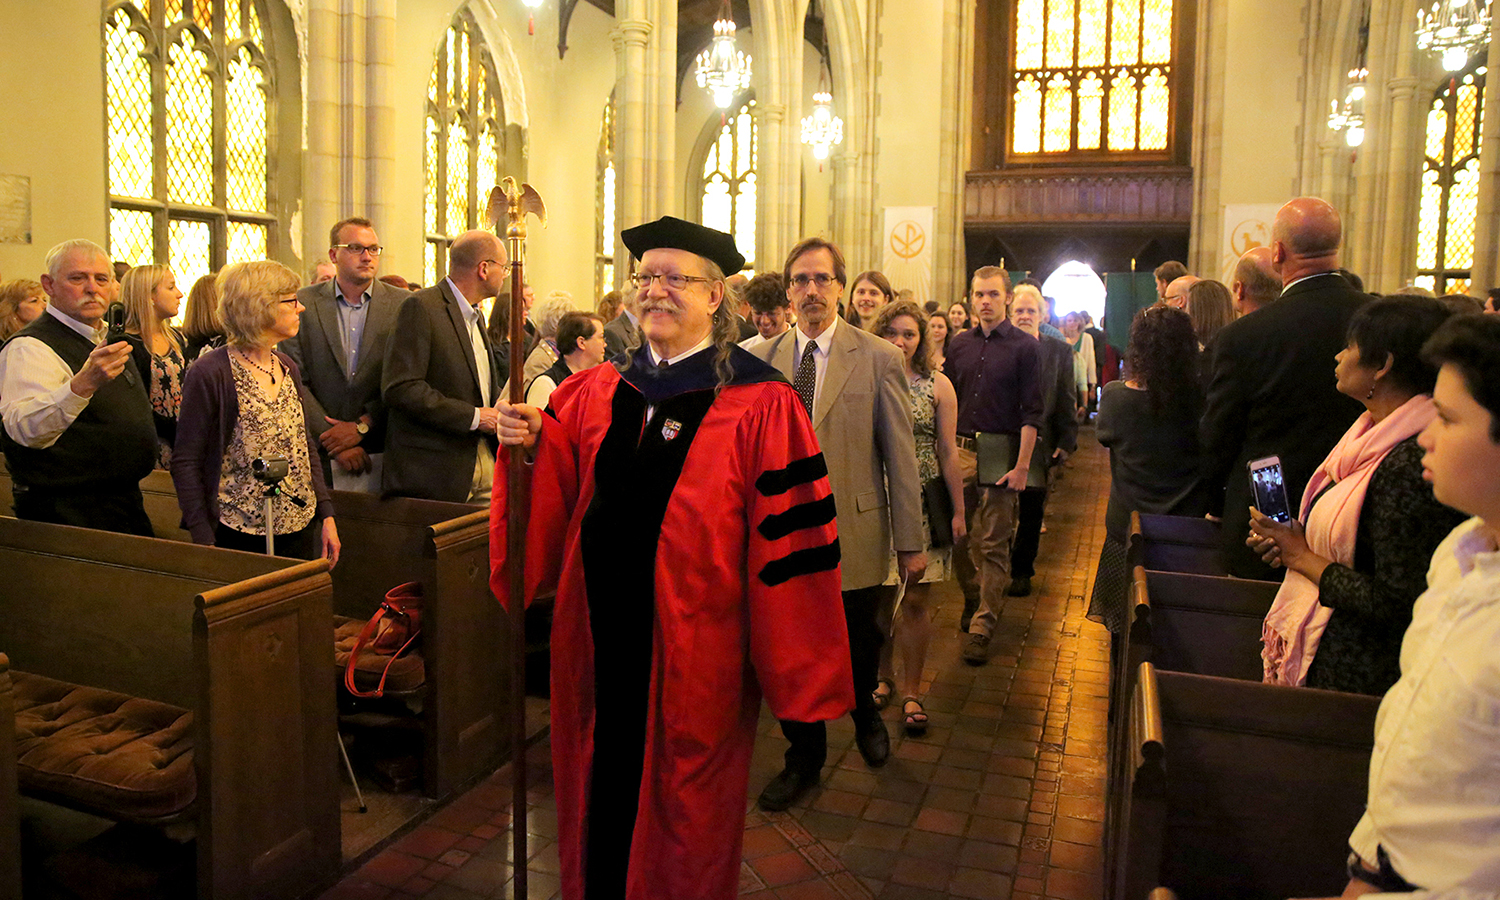 Associate Professor of Asian Studies James-Henry Holland leads the procession of HWS faculty members during Baccalaureate 2017.